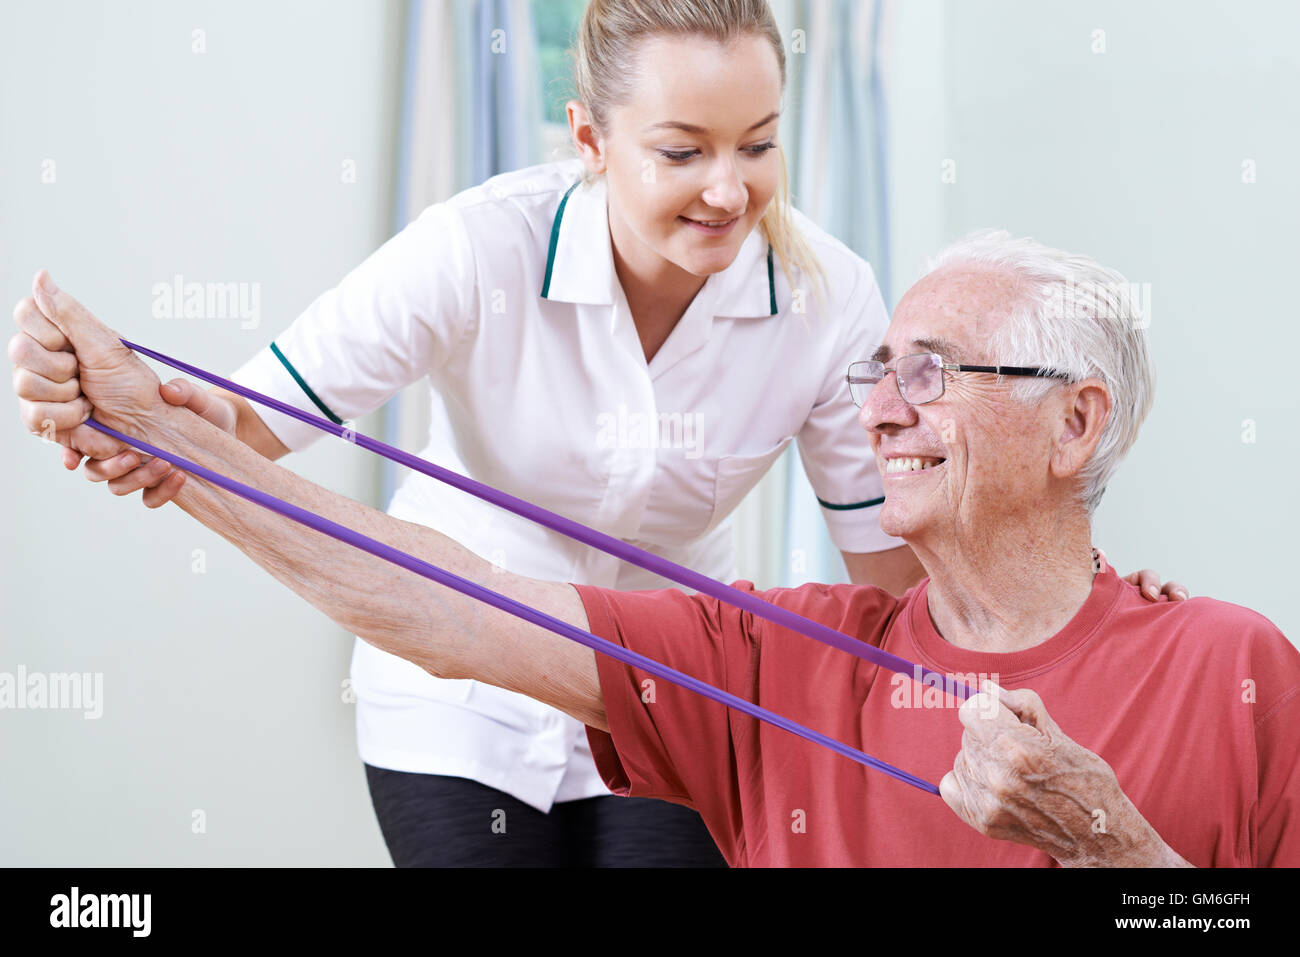 Physiotherapist Helping Senior Male To Use Resistance Band - Stock Image